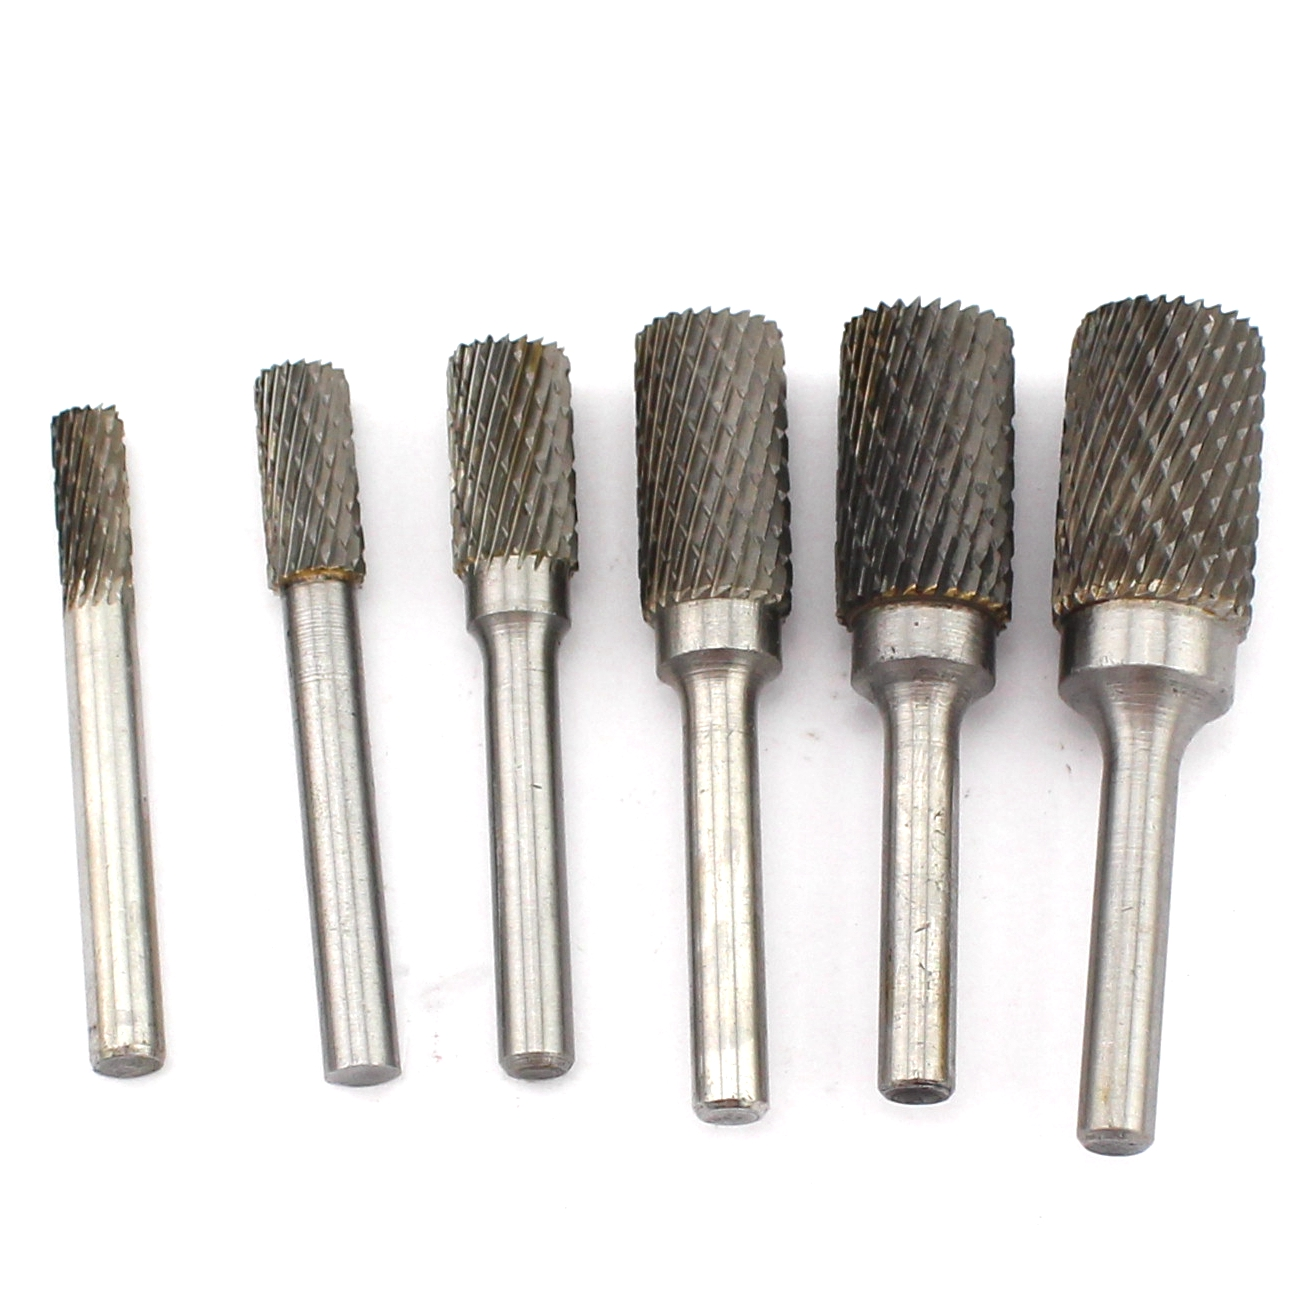 10 Pcs 3mm Alloy Shank Dia 6mm x 16mm Mounted Grinding Point Sharpening Tool